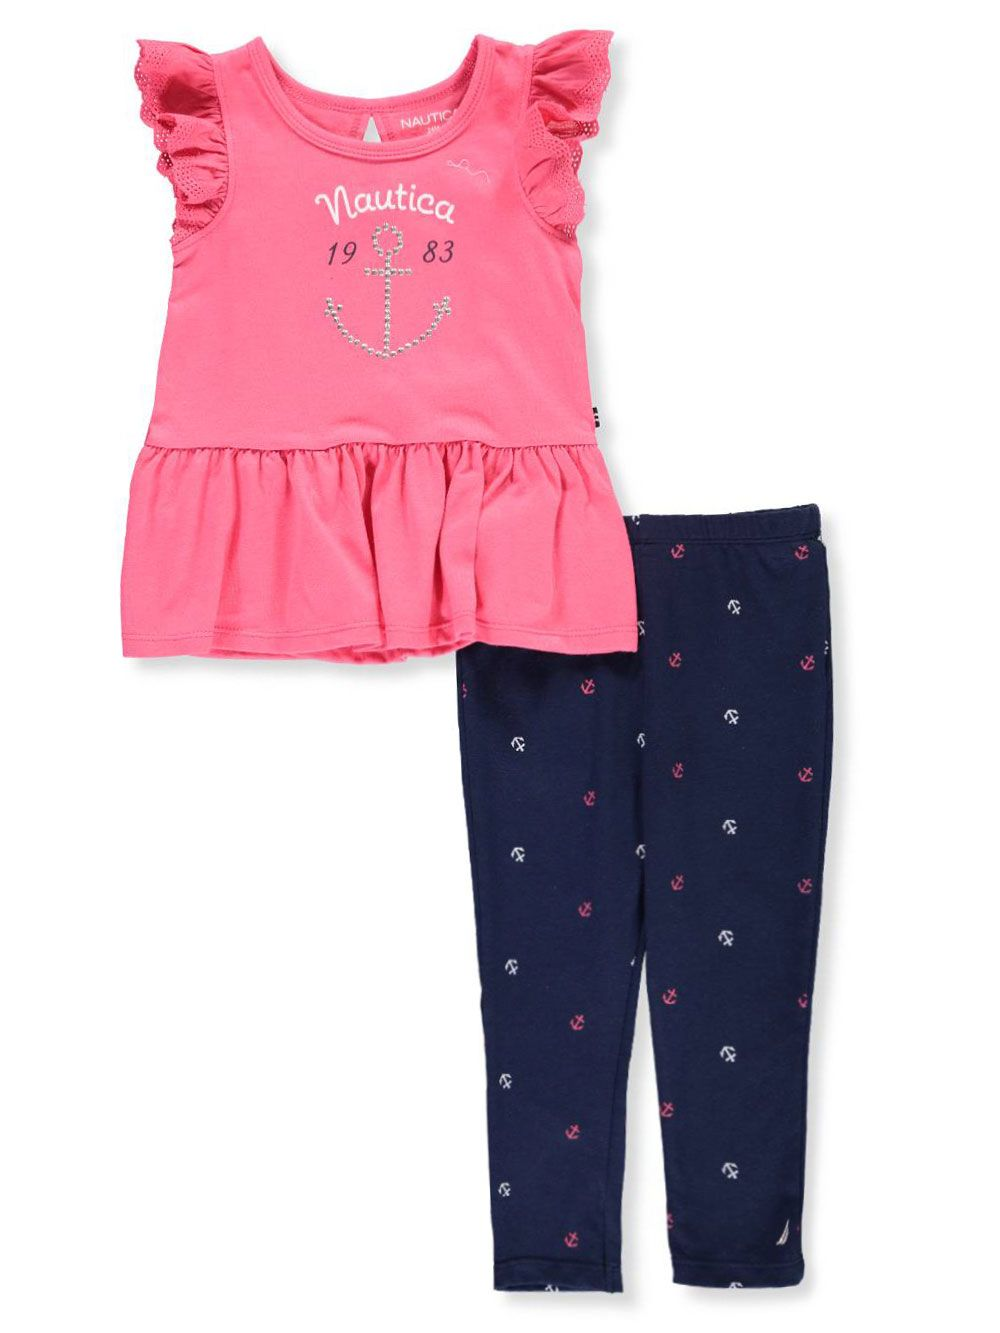 b1c86bd46a26a Nautica Baby Girls' 2-Piece Leggings Set Outfit | Girls Clothes ...